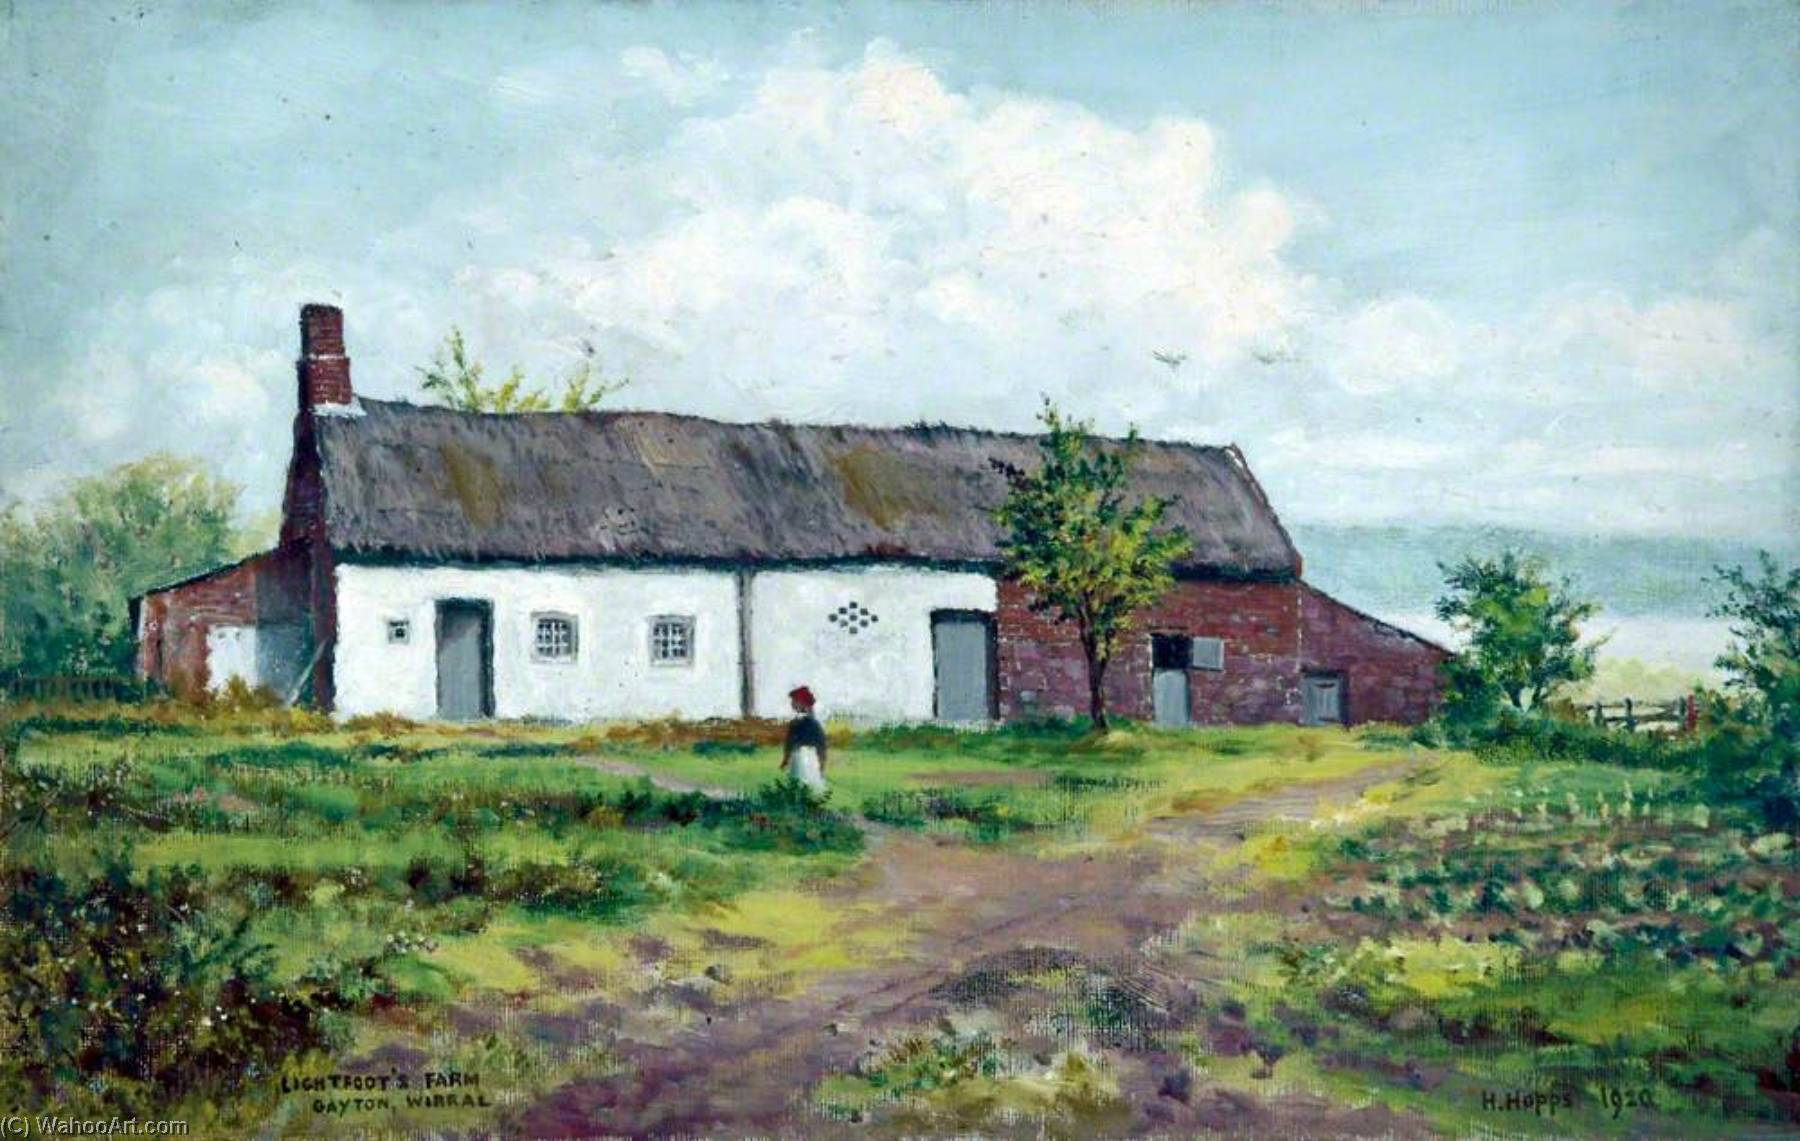 Lightfoot`s Farm, Gayton, Wirral, 1920 by Harold Hopps | Museum Quality Reproductions | WahooArt.com